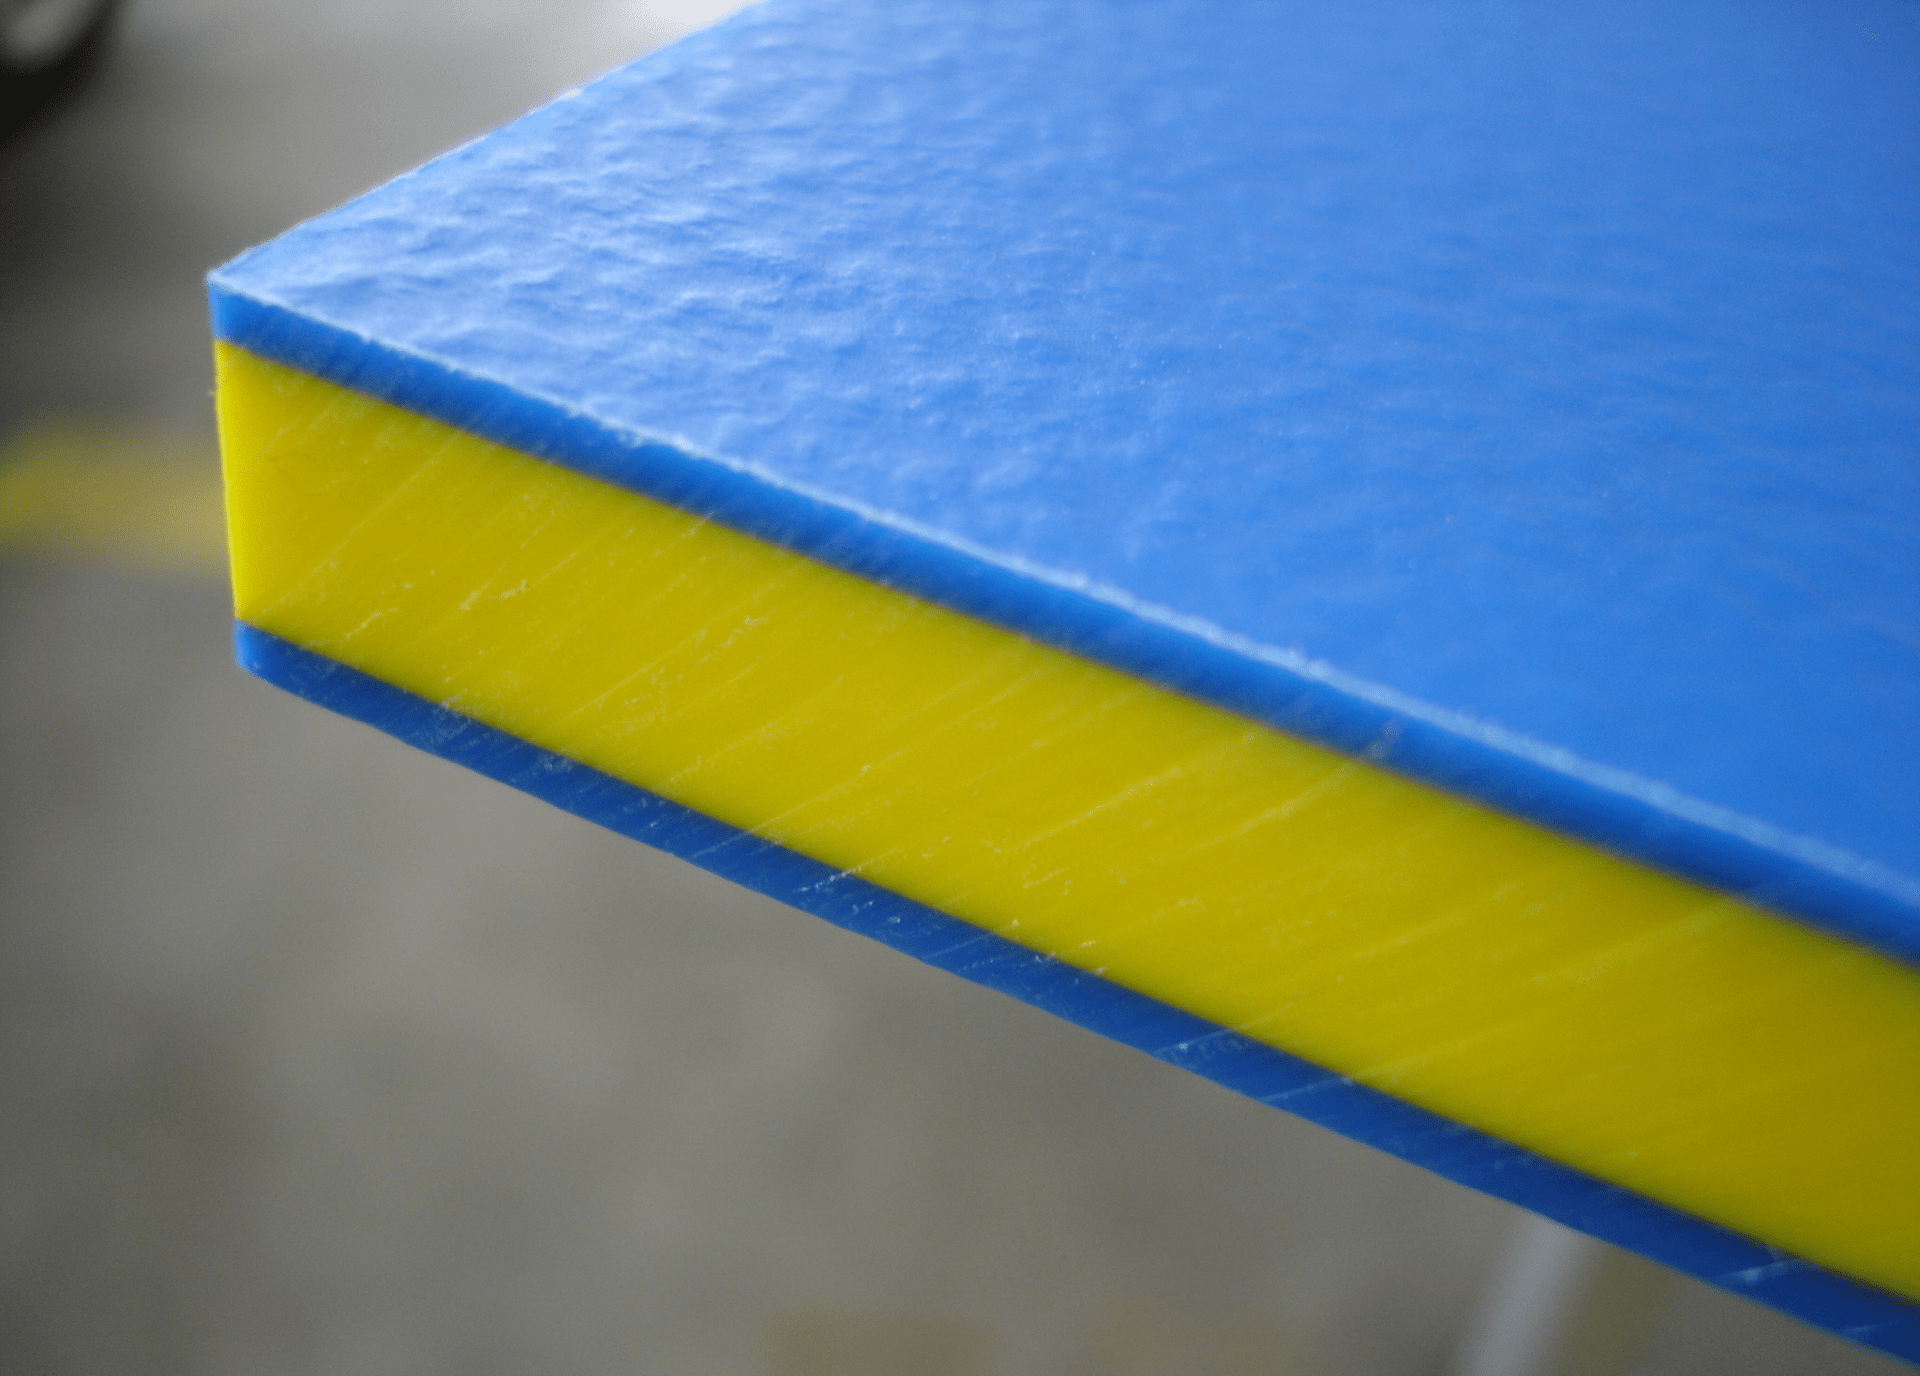 Durable HDPE sheets for signage or engineering parts